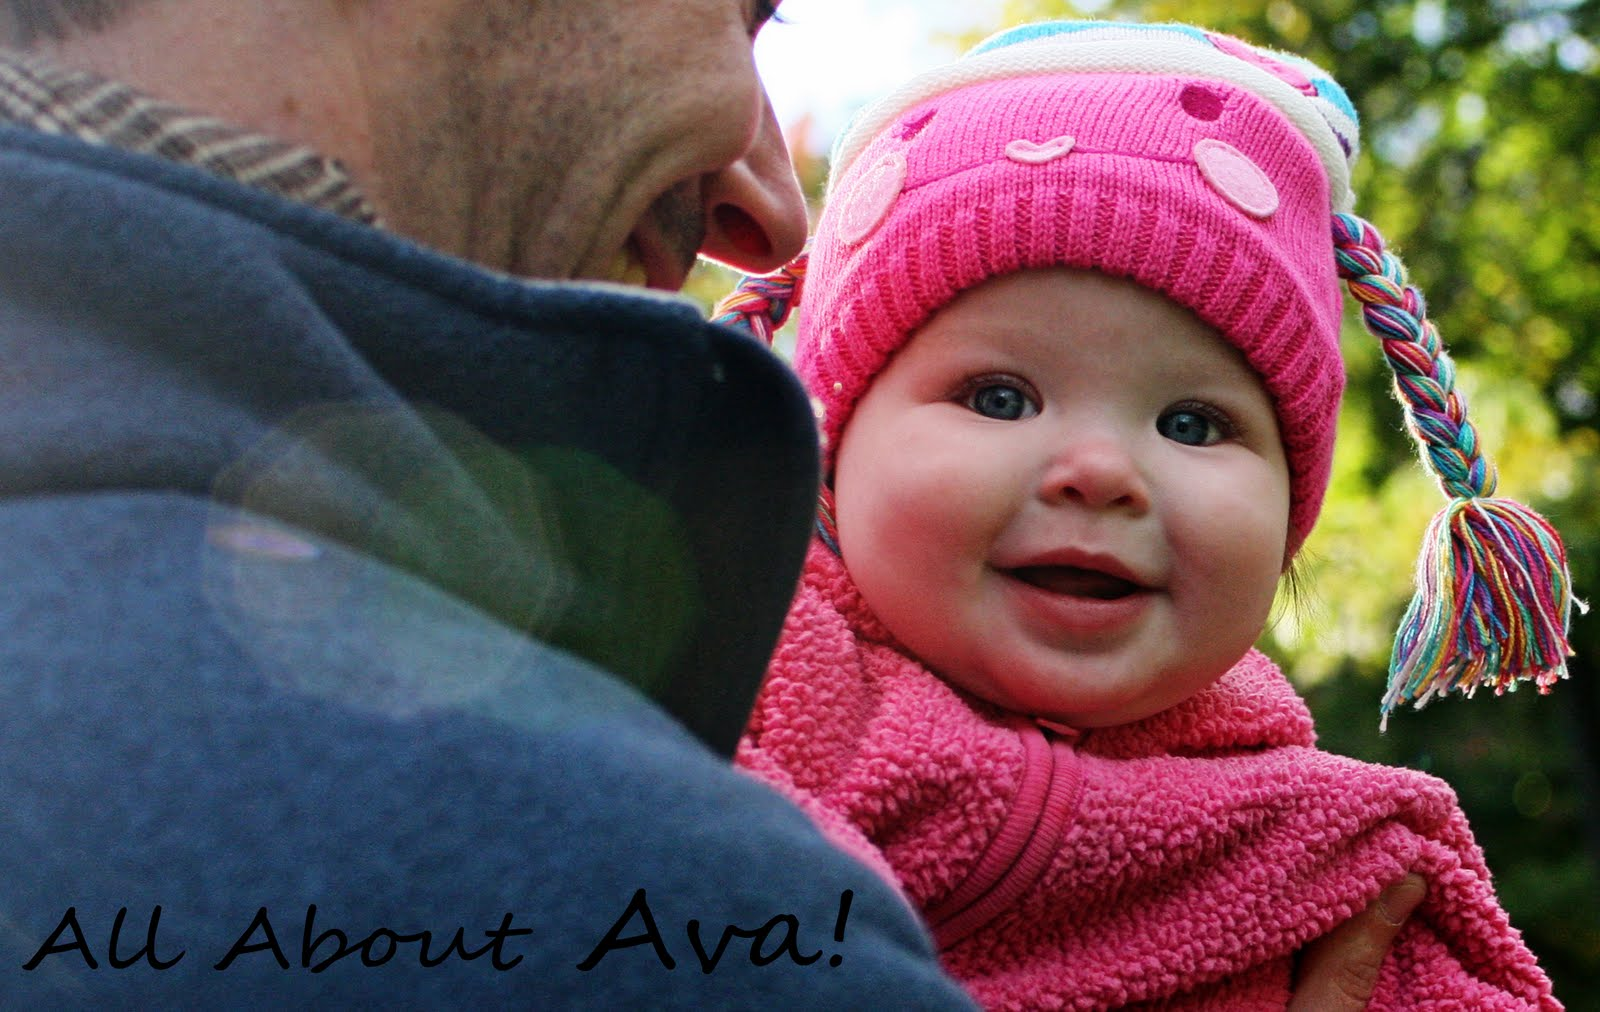 All About Ava!